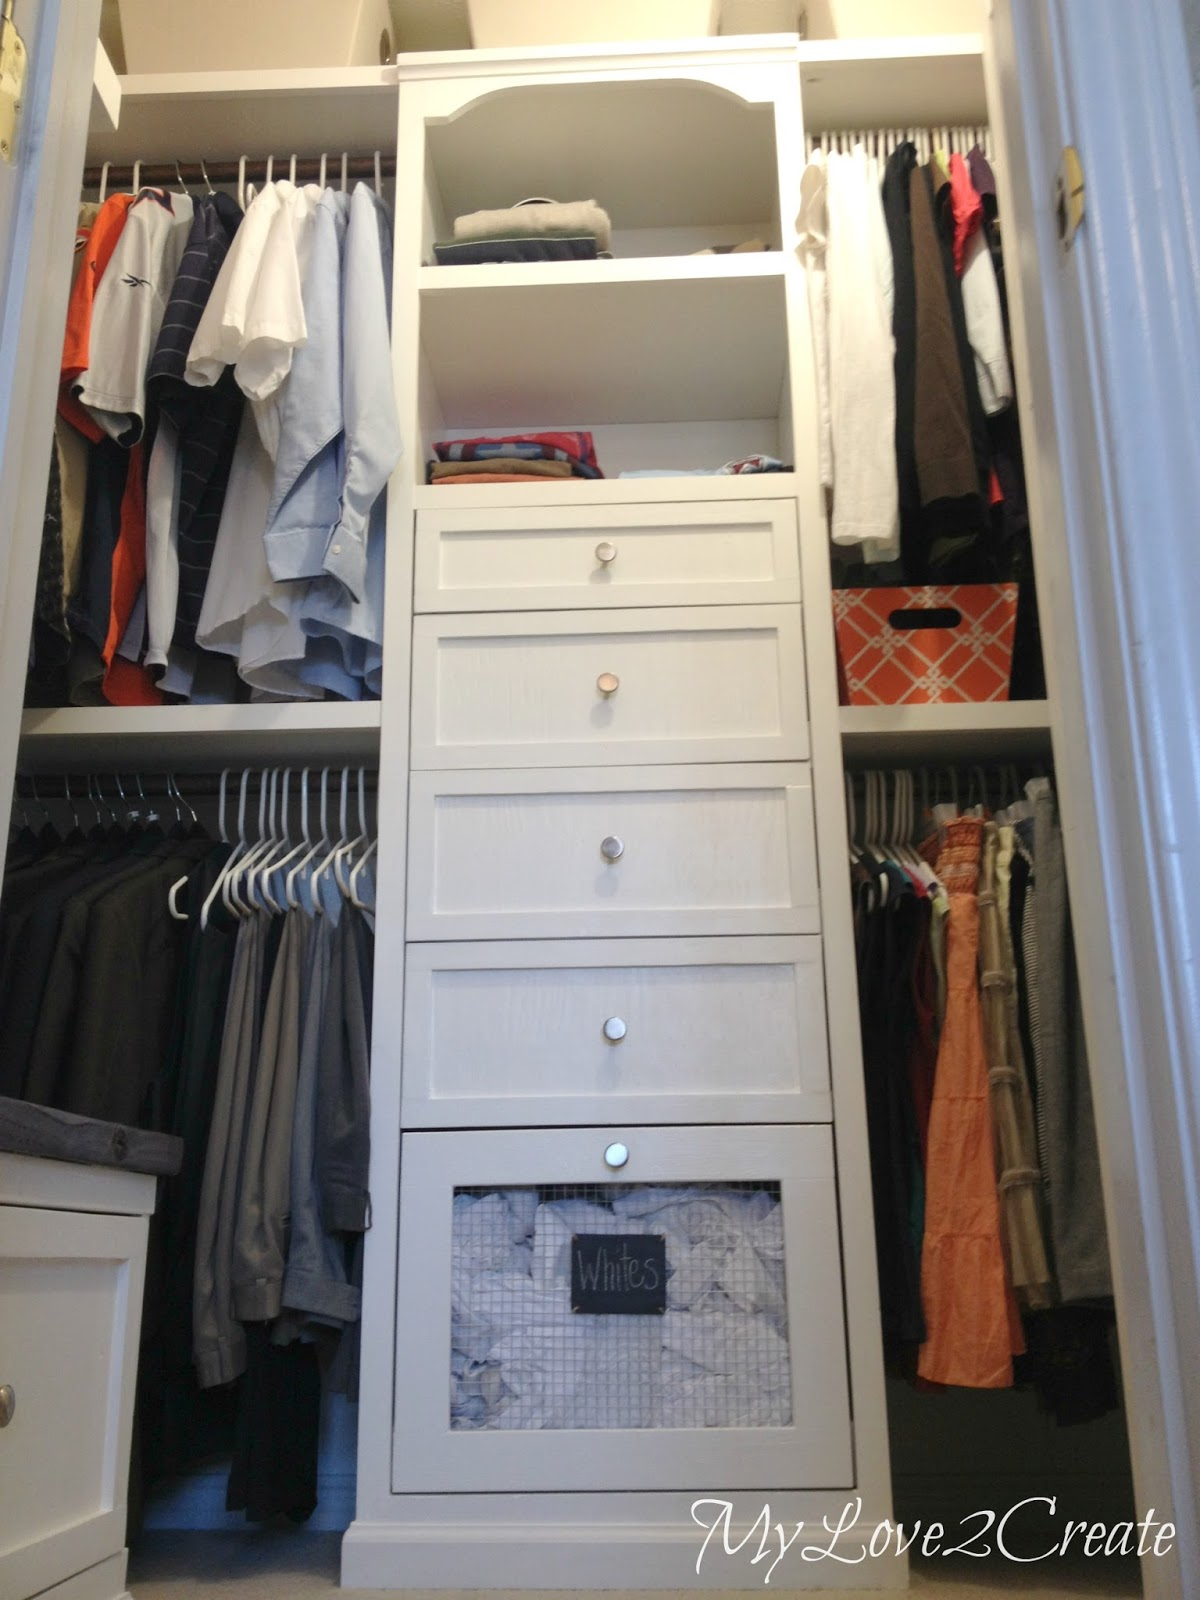 Wonderful Master Closet Makeover With Laundry Hampers And Storage Tower, My Love 2  Create On Remodelaholic